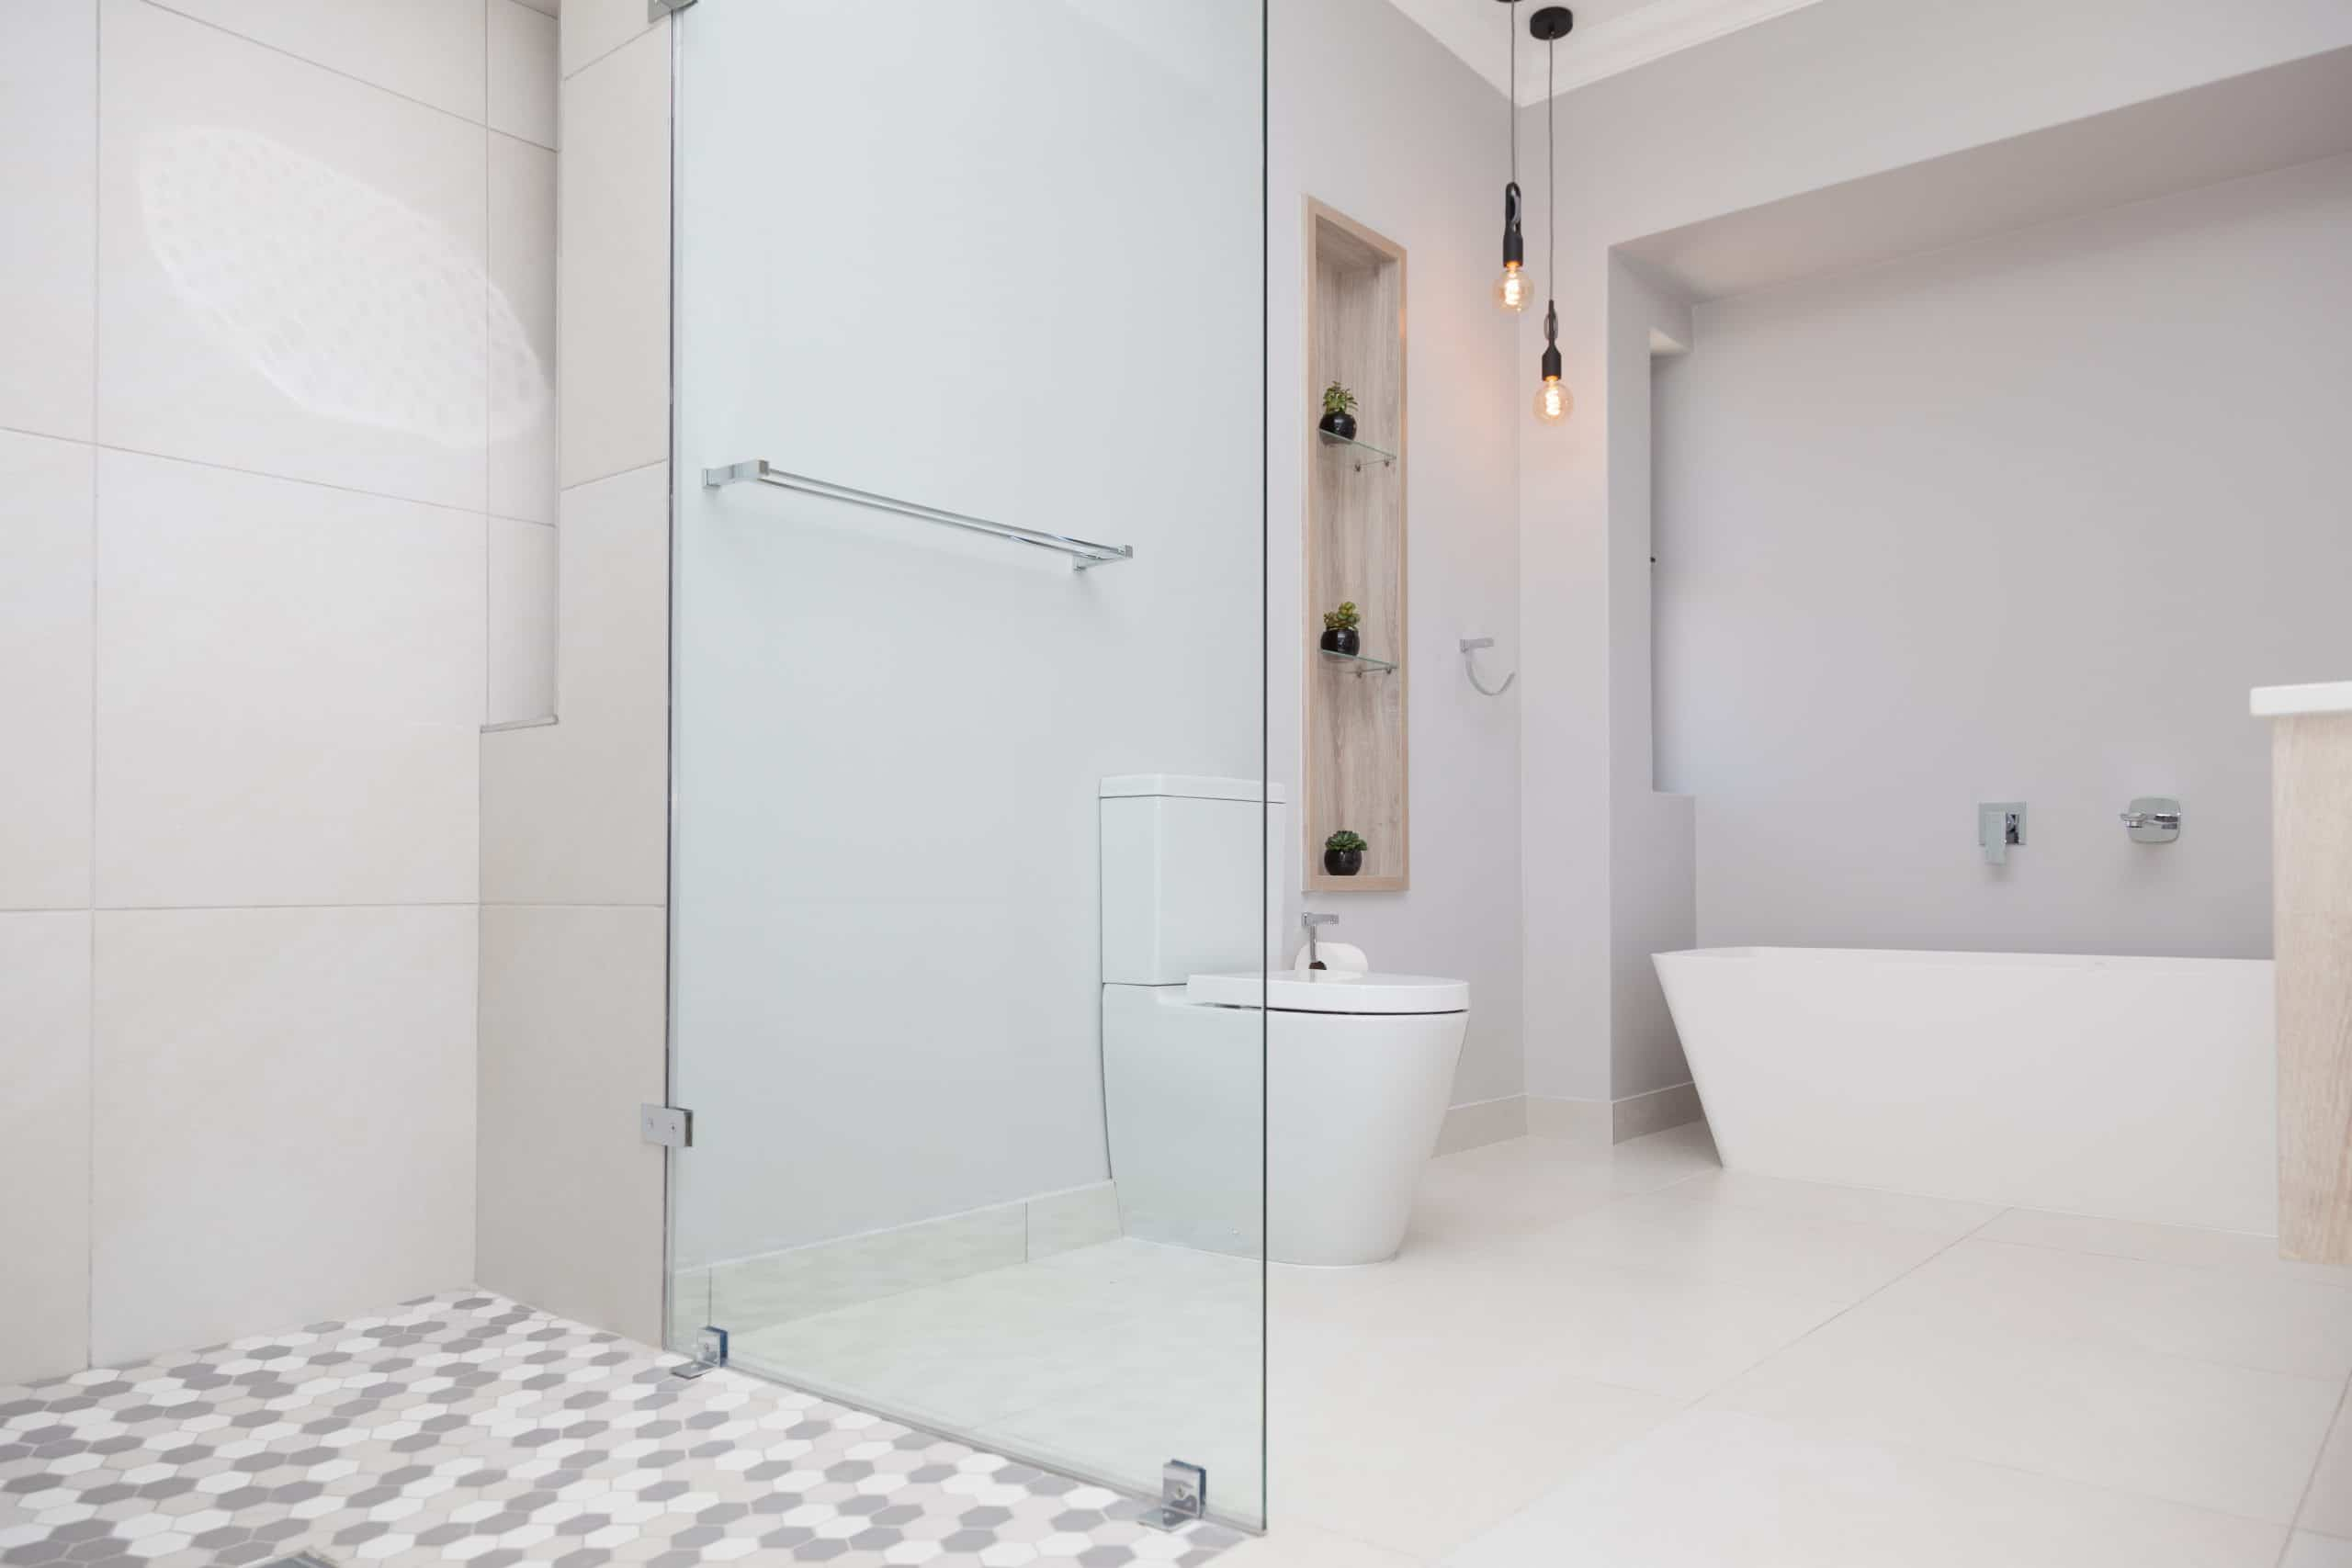 modern inlet bathroom shelve next to toilet with hanging pendants